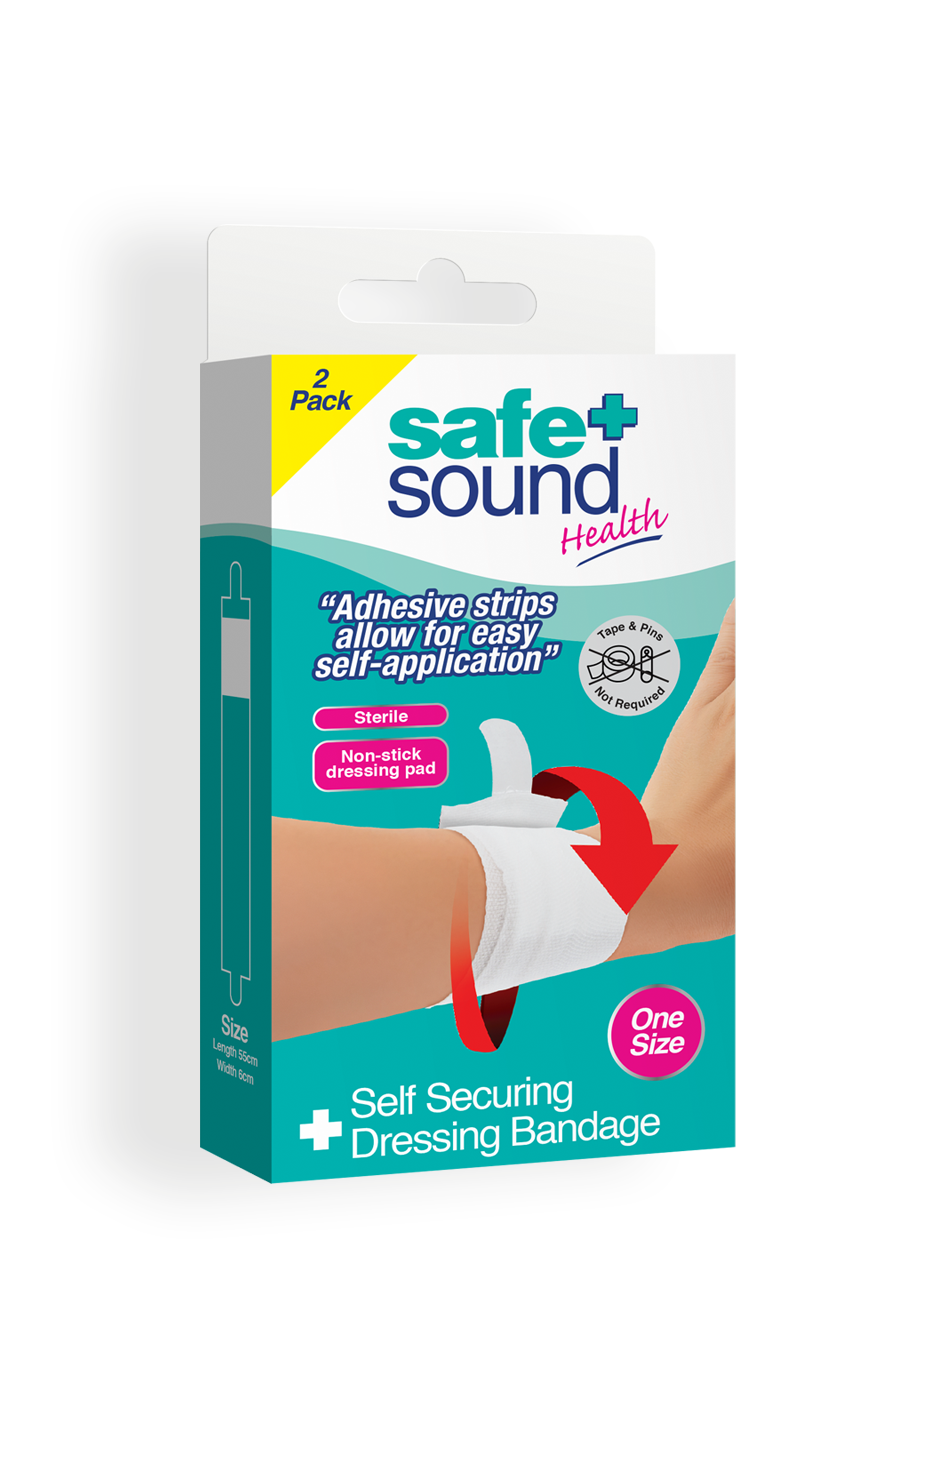 Safe and Sound Health Self-Securing Dressing Bandage